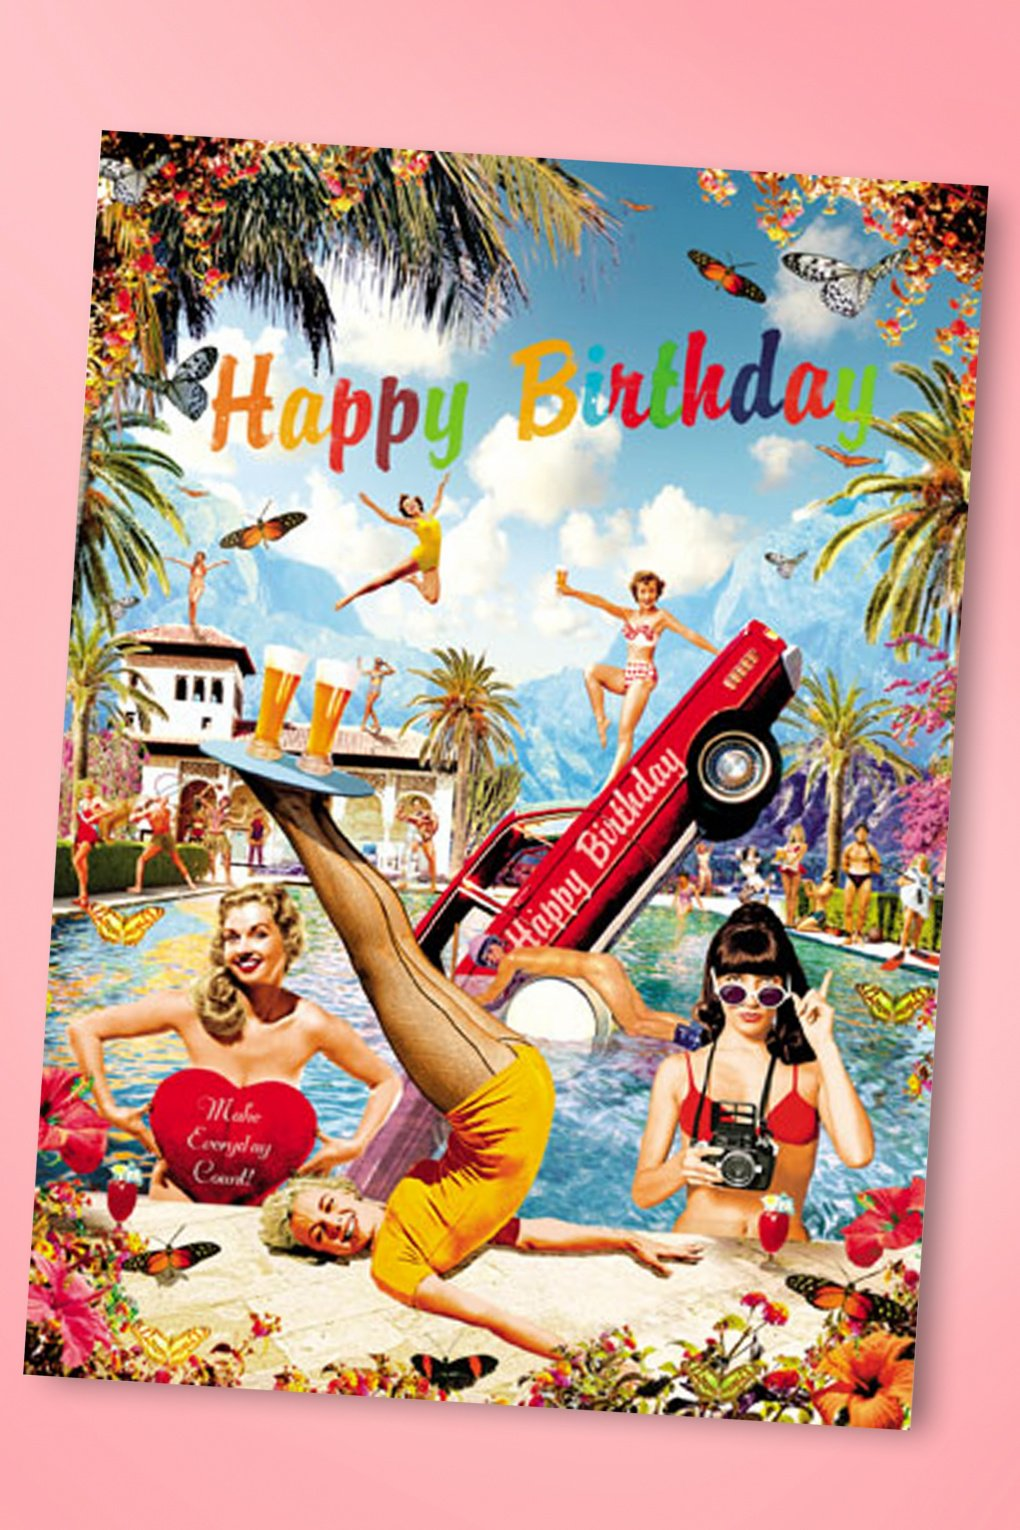 birthday retro card ; 80449-Betty-Knows-Best-Greeting-Cards-532-90-18091-full